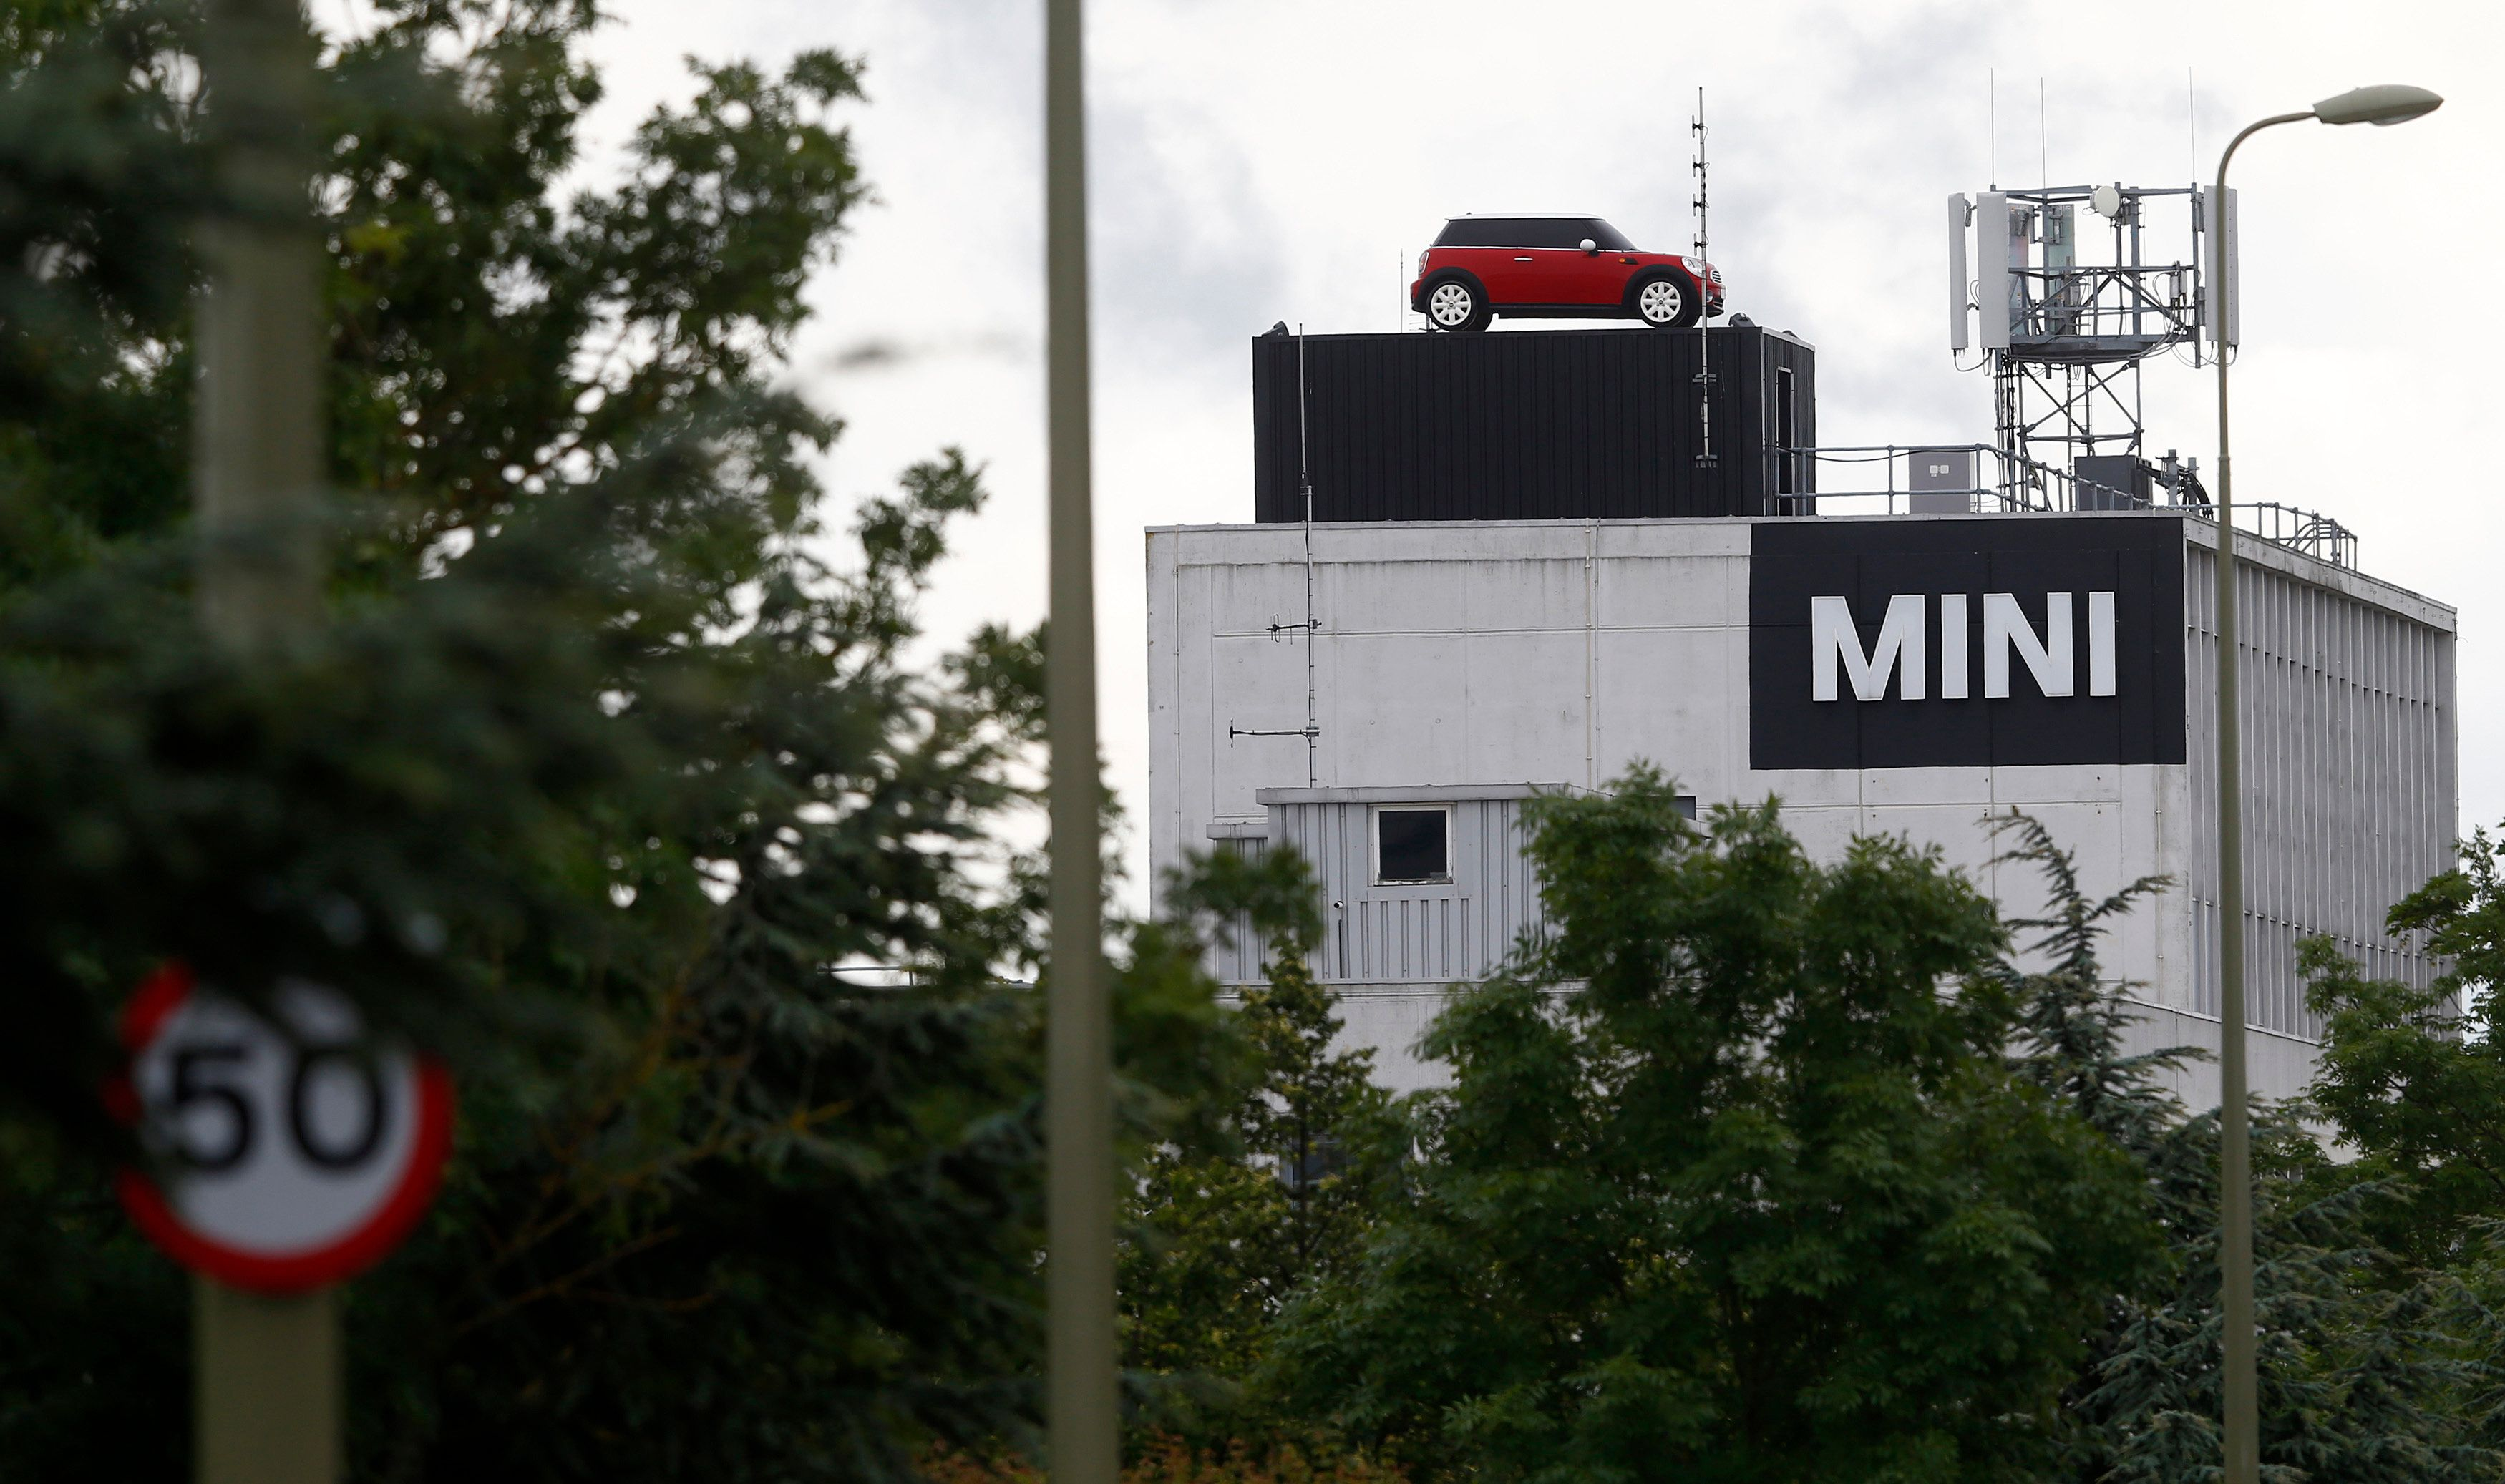 BMW Confirms MINI Factory Will Shut For A Month After